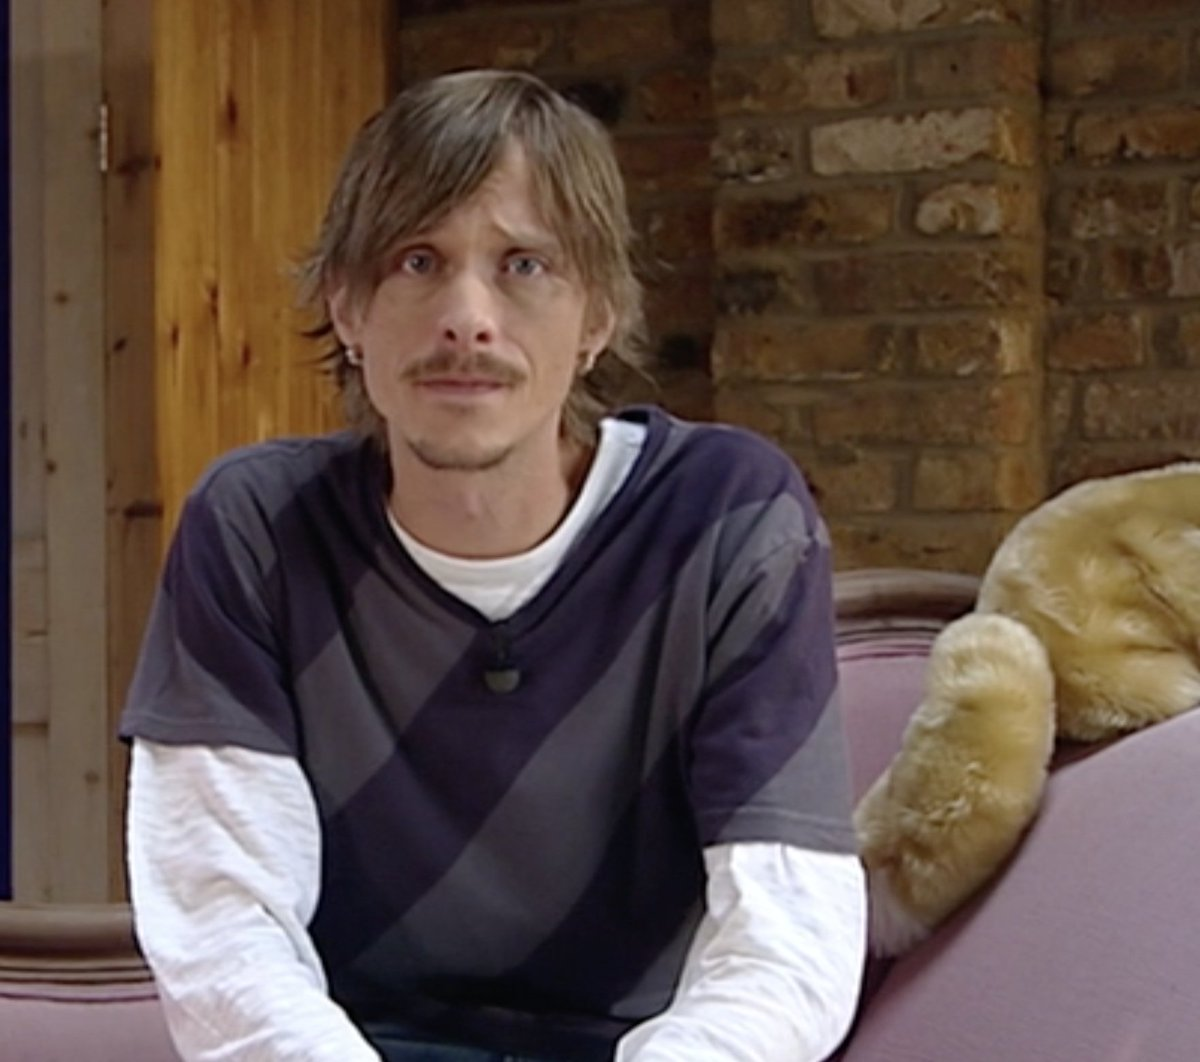 Ahoy, mateys! All hands on deck for tonights #BedtimeStory   Mackenzie Crook reads &#39;Don&#39;t Mention Pirates&#39; at 6:50pm   #PiratesLife <br>http://pic.twitter.com/73iuEQzaie